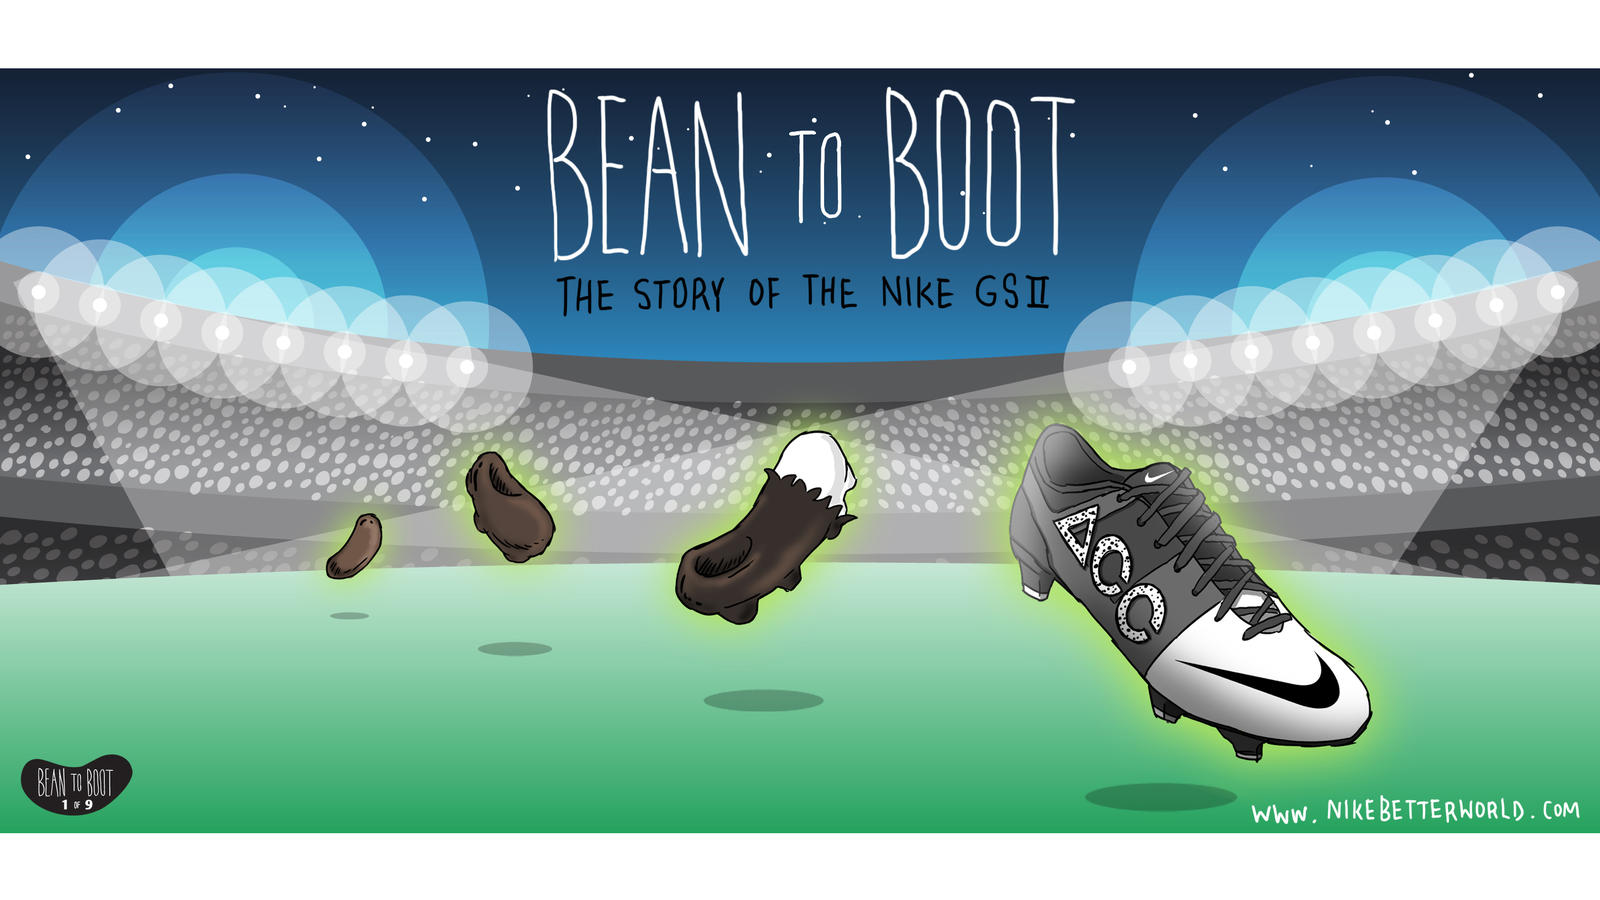 Nike_Bean_To_Boot_Cover_GSII